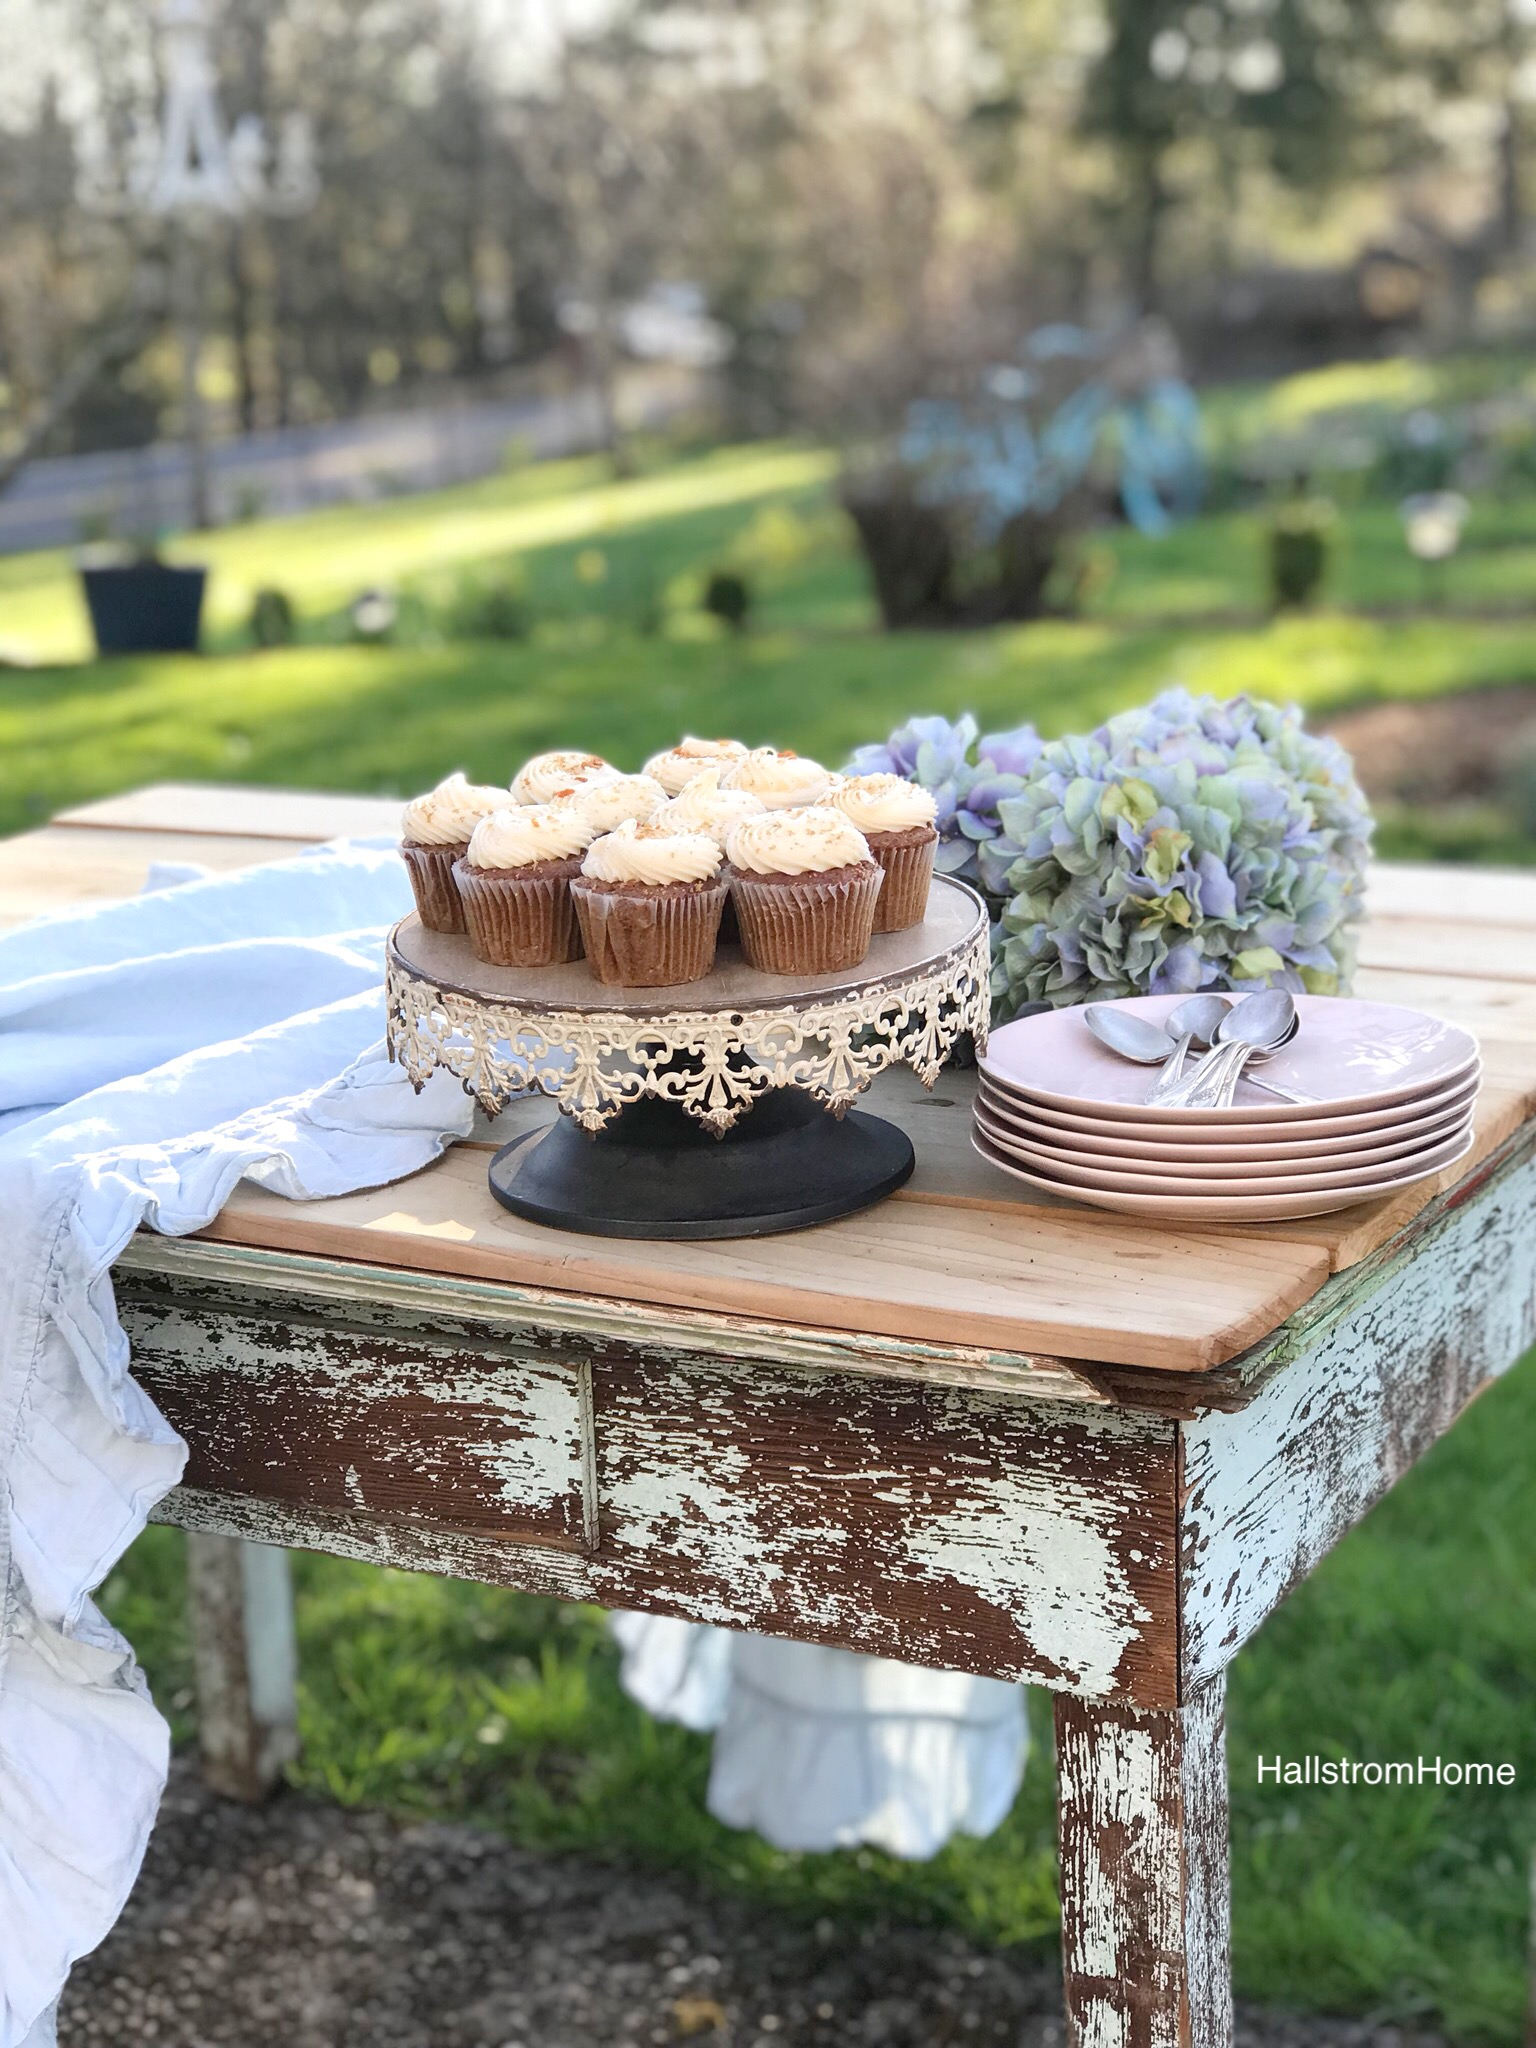 white rustic cake stand with 10 white frosted cupcakes and stack of pink plates with silver spoons ontop. bouquet of blue hydrangeas on a blue chippy farmhouse table